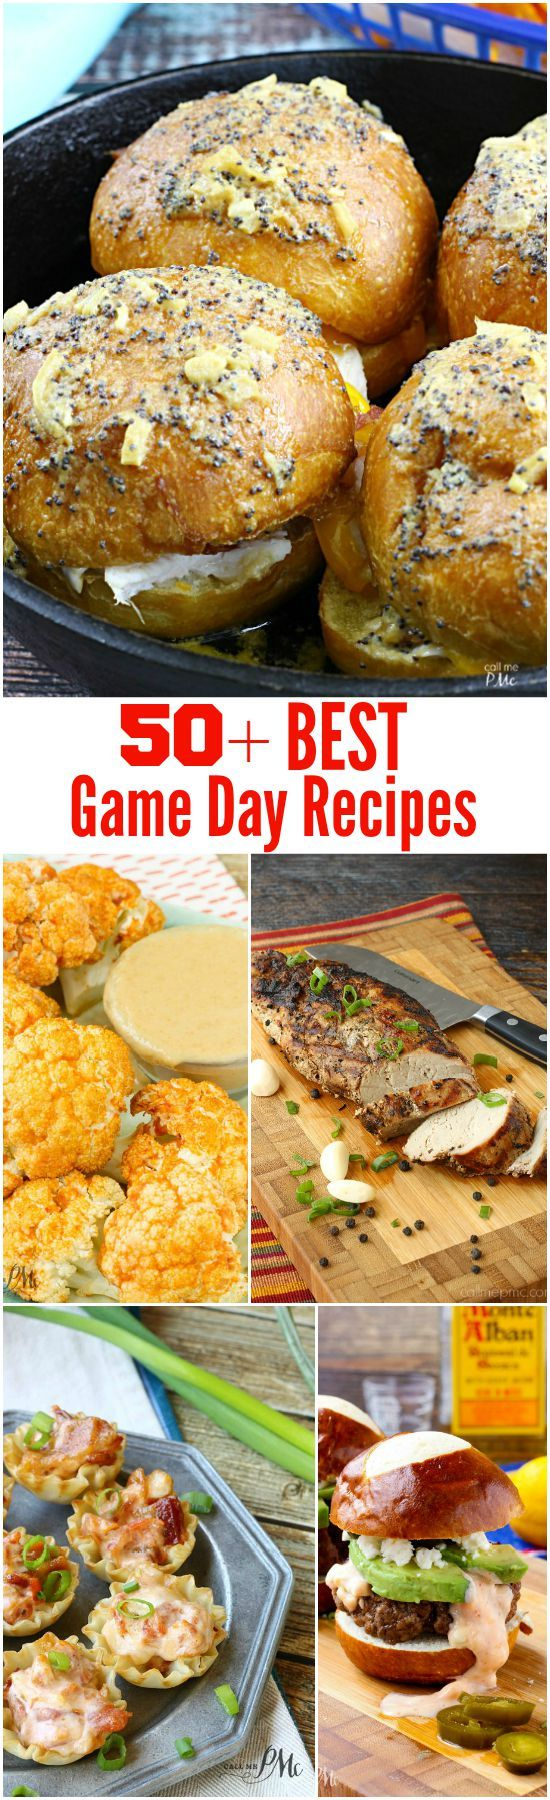 50+ Best Game Day Food Recipes. Easy football party ideas. Make everything from appetizers, sliders, or pizza for a crowd!